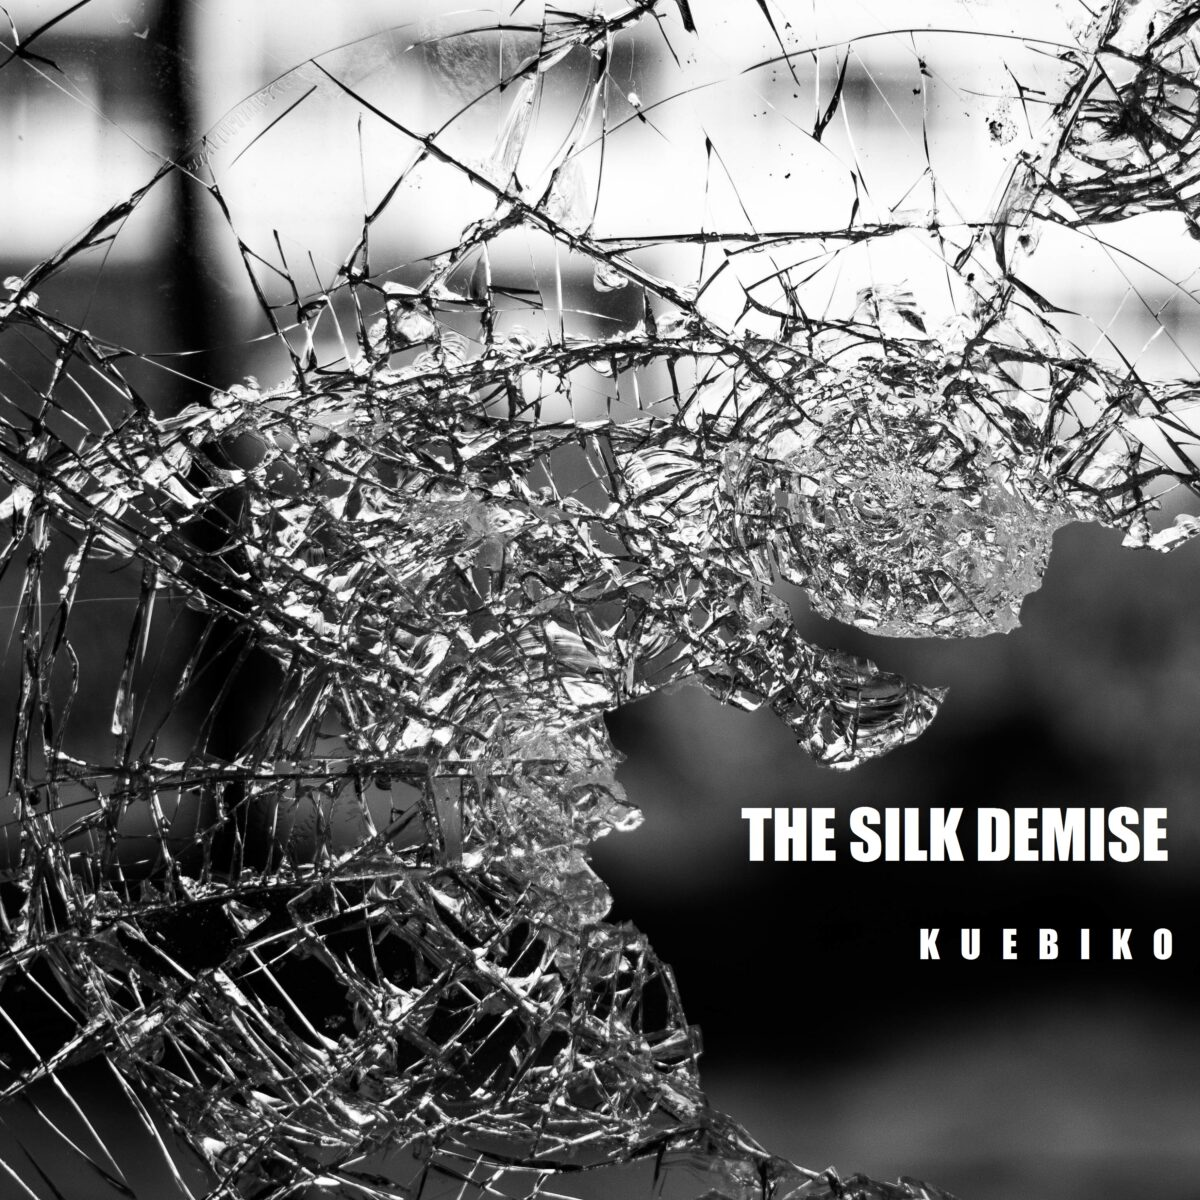 The Silk Demise - Kuebiko